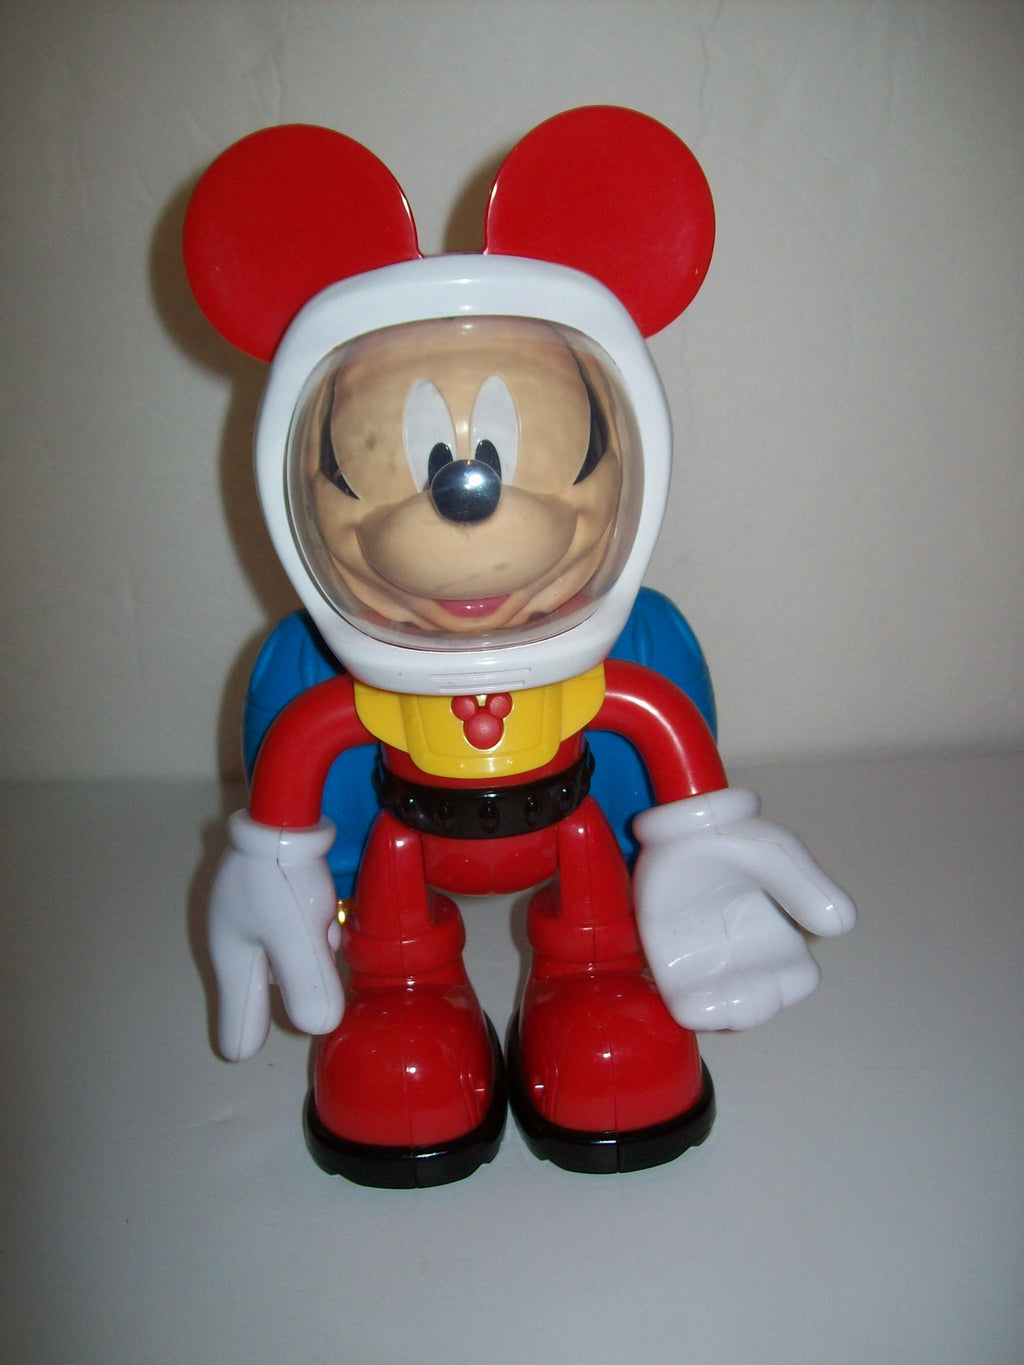 Mickey Mouse Jet Pack Astronaut By Fisher Price - We Got Character